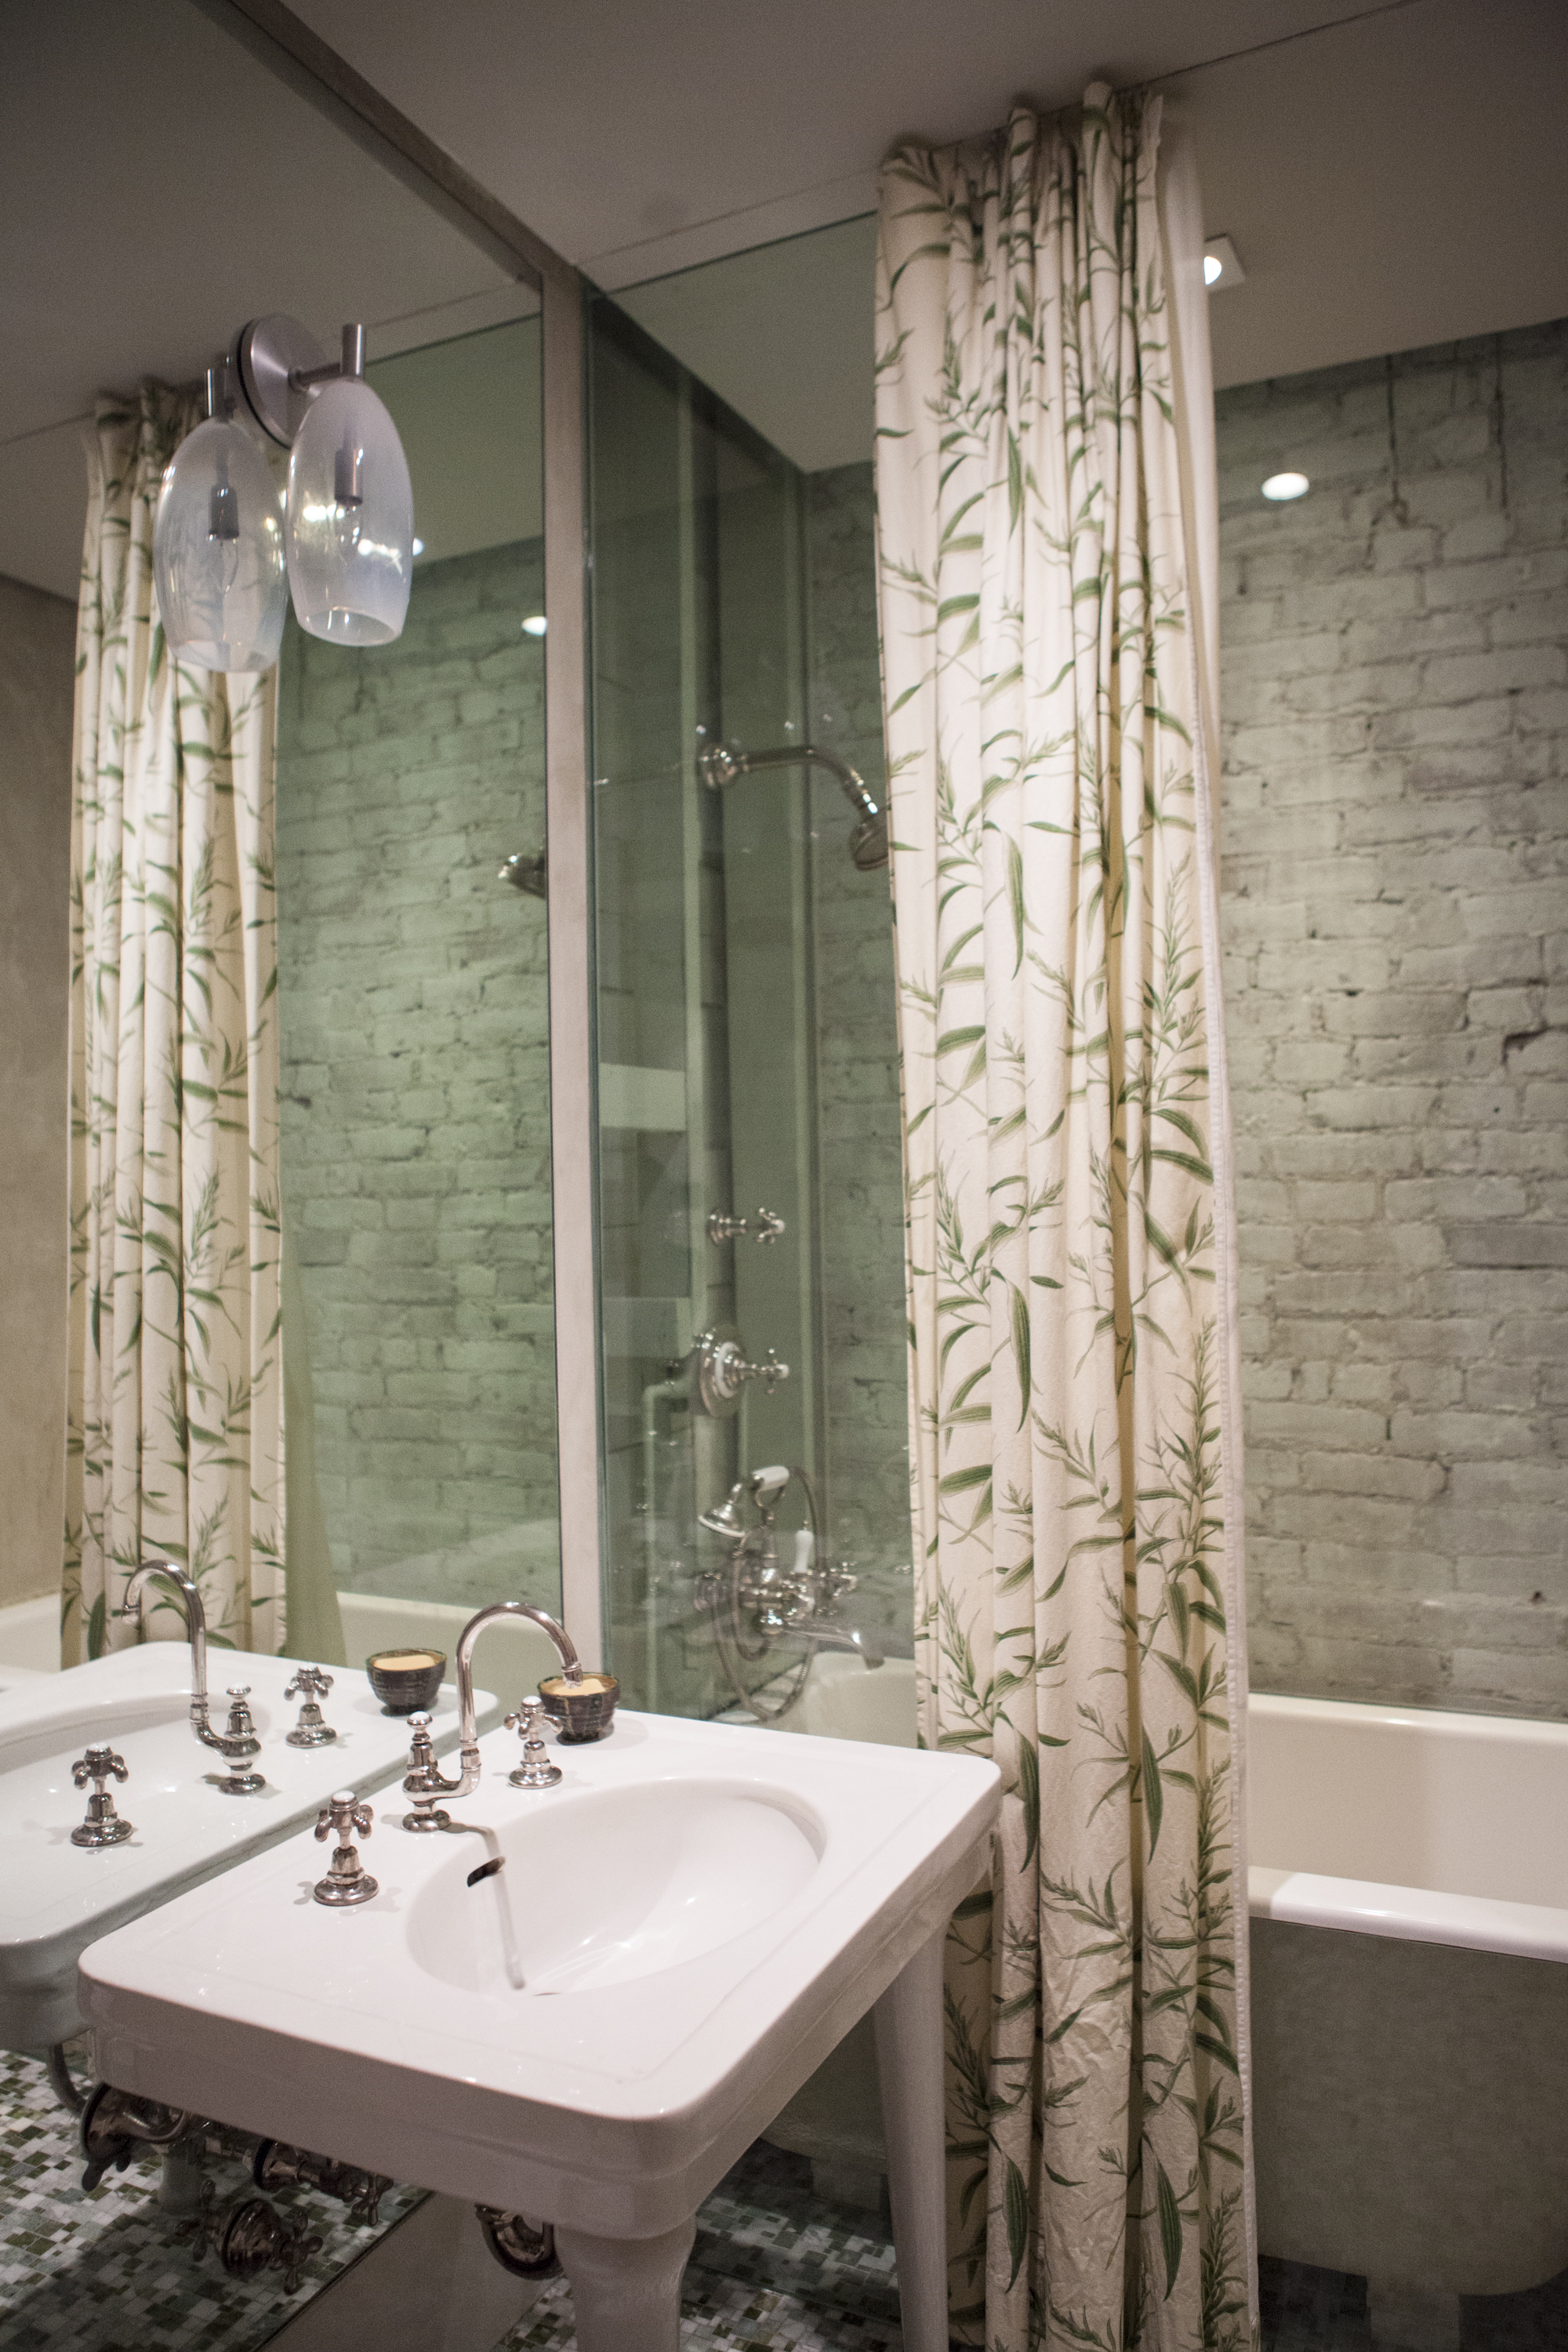 Textures and prints bring the upstairs bathroom to life.